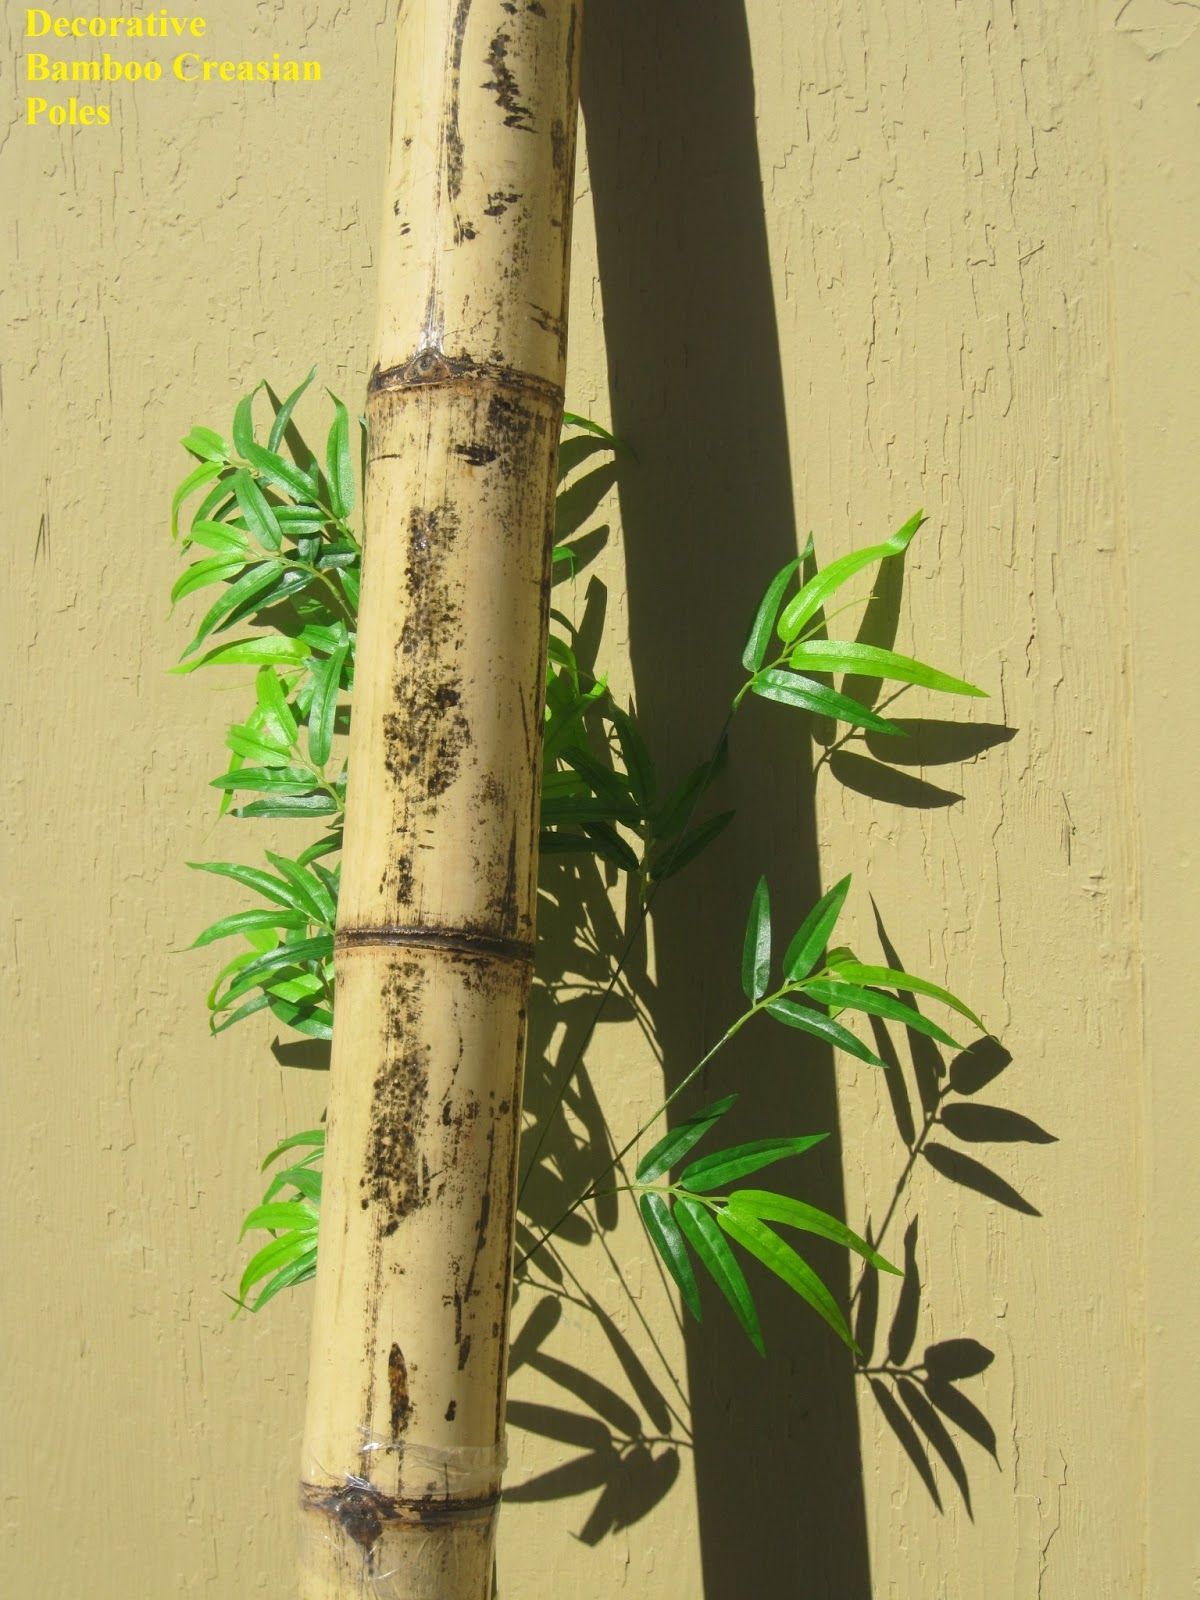 Best Bamboo Cane/ Pole /Stake all decor ideas for Fences,Custom ...